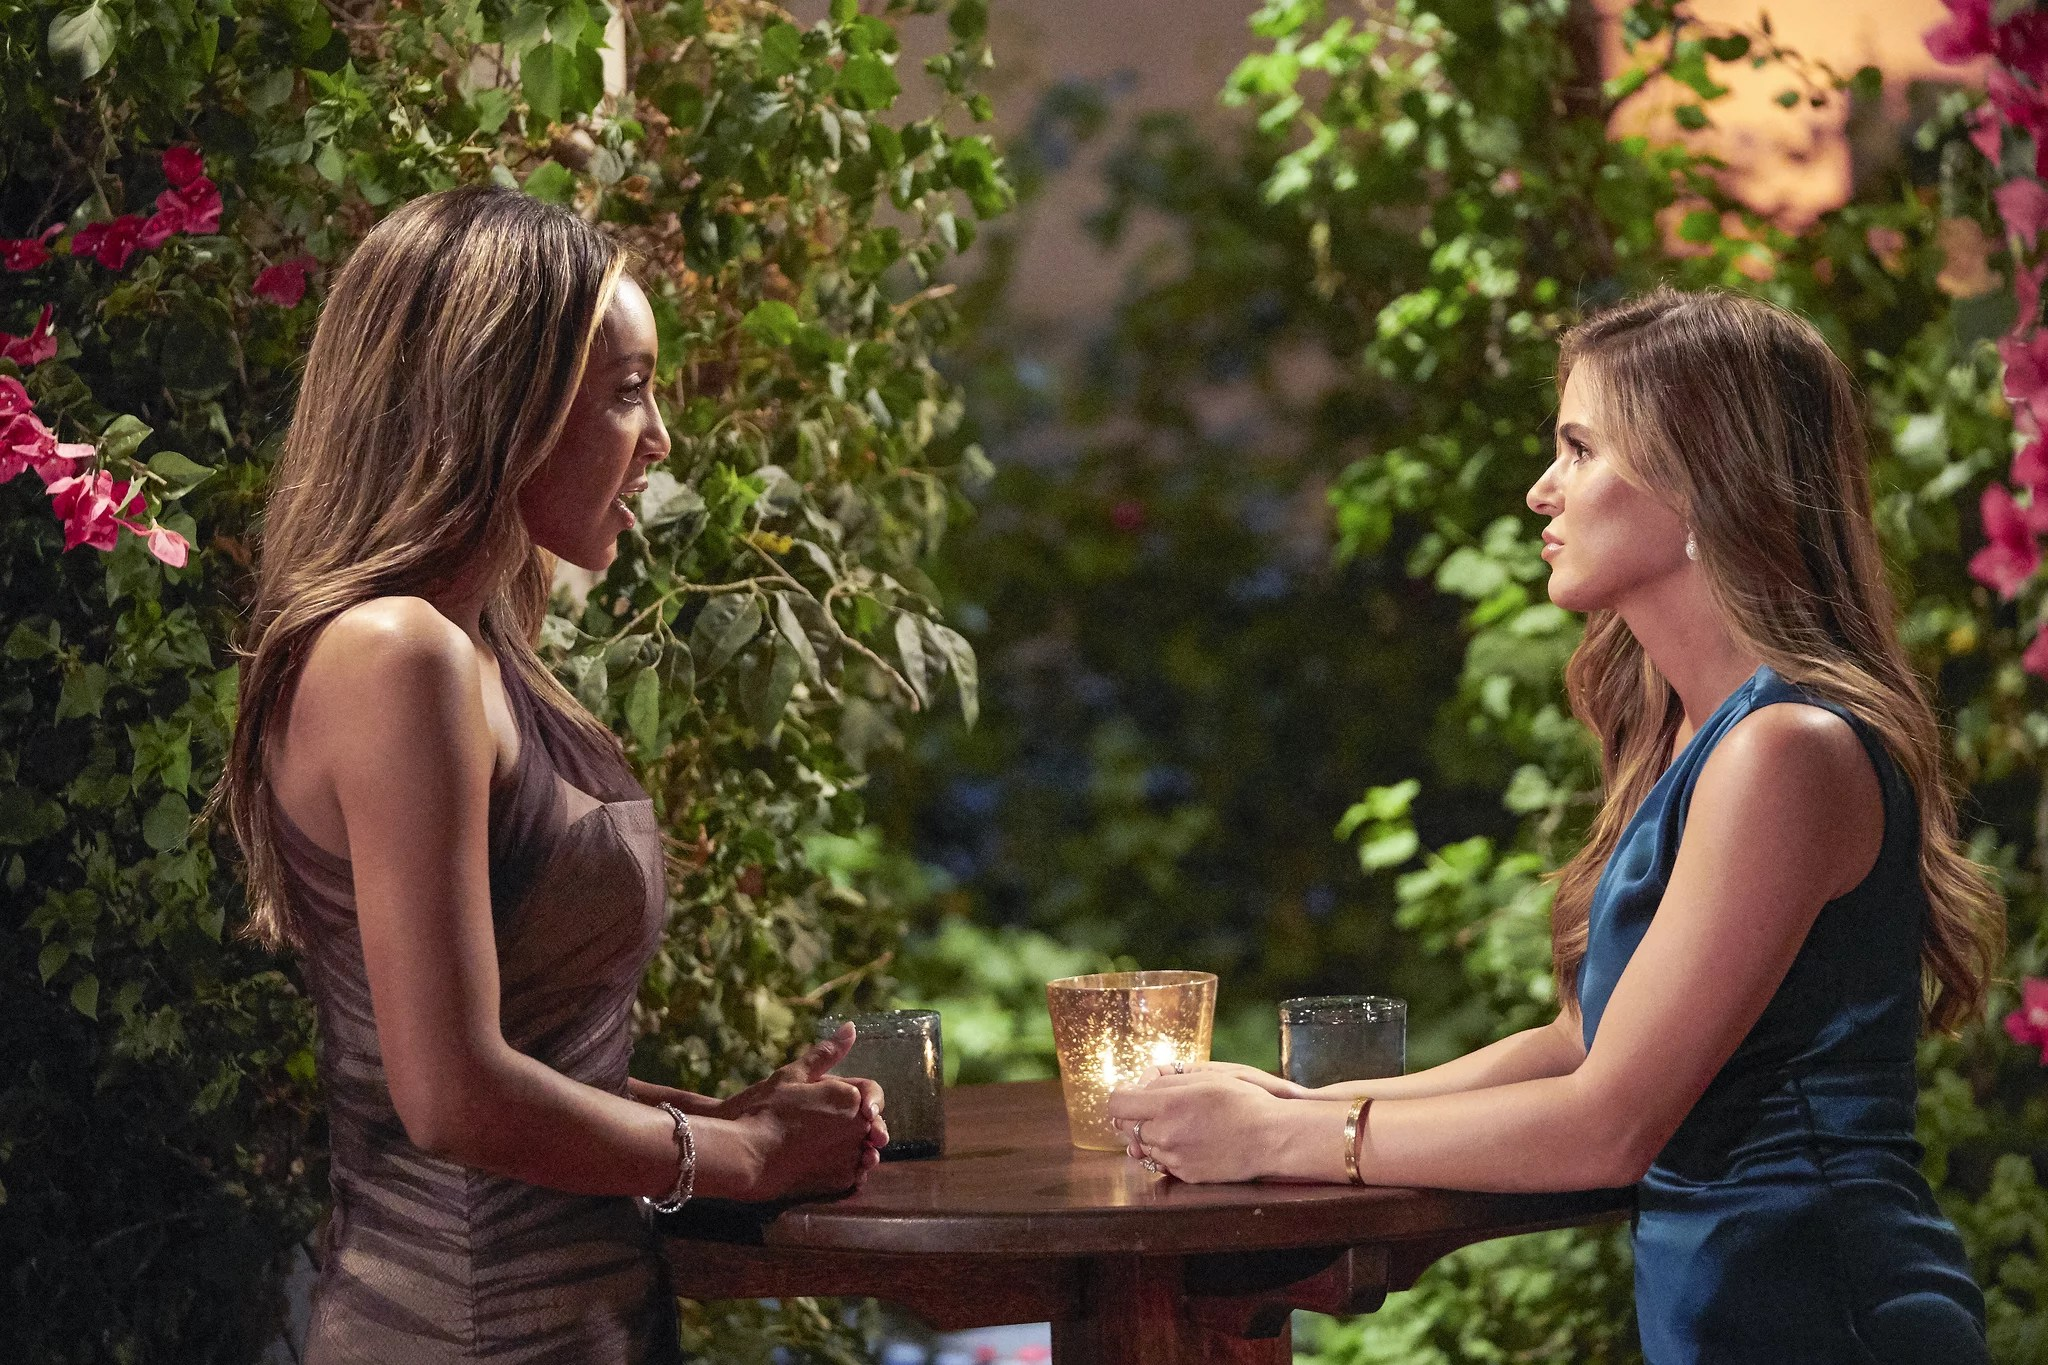 THE BACHELORETTE - 1609  The drama rages on as Bennett and Noah continue to confront one another on the impromptu two-on-one date. JoJo ups the ante by explaining to the men that a rose this week will be their ticket to a hometown date and an opportunity to introduce Tayshia to their families. One mans one-on-one date starts as a fun scavenger hunt but evolves into a more serious discussion when he shares a deeply emotional secret with the Bachelorette that he hasnt revealed to anyone else. Honesty is at the top of Tayshias list for a soul mate, and she puts five men through a high-pressure lie detector date. After all the confessions, there is one more shocking surprise at the end of the night that might turn her journey upside down on The Bachelorette, TUESDAY, DEC. 8 (8:00-10:01 p.m. EST), on ABC. (ABC/Craig Sjodin)TAYSHIA ADAMS, JOJO FLETCHER